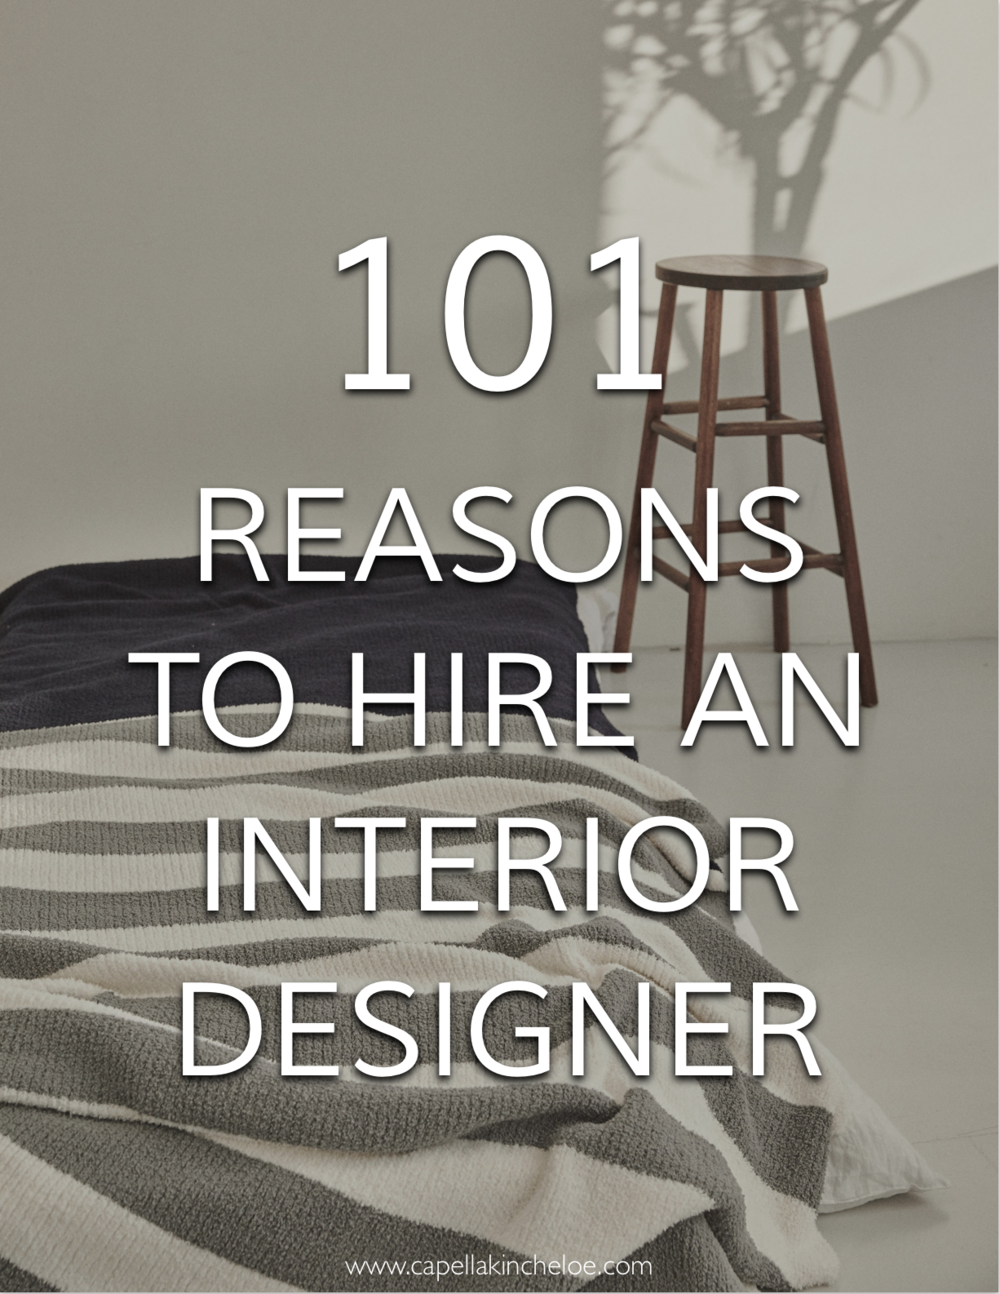 There are so many (101 of them!) Reasons to hire an interior designer or decorator.  #cktradesecrets #interiordesignbusiness